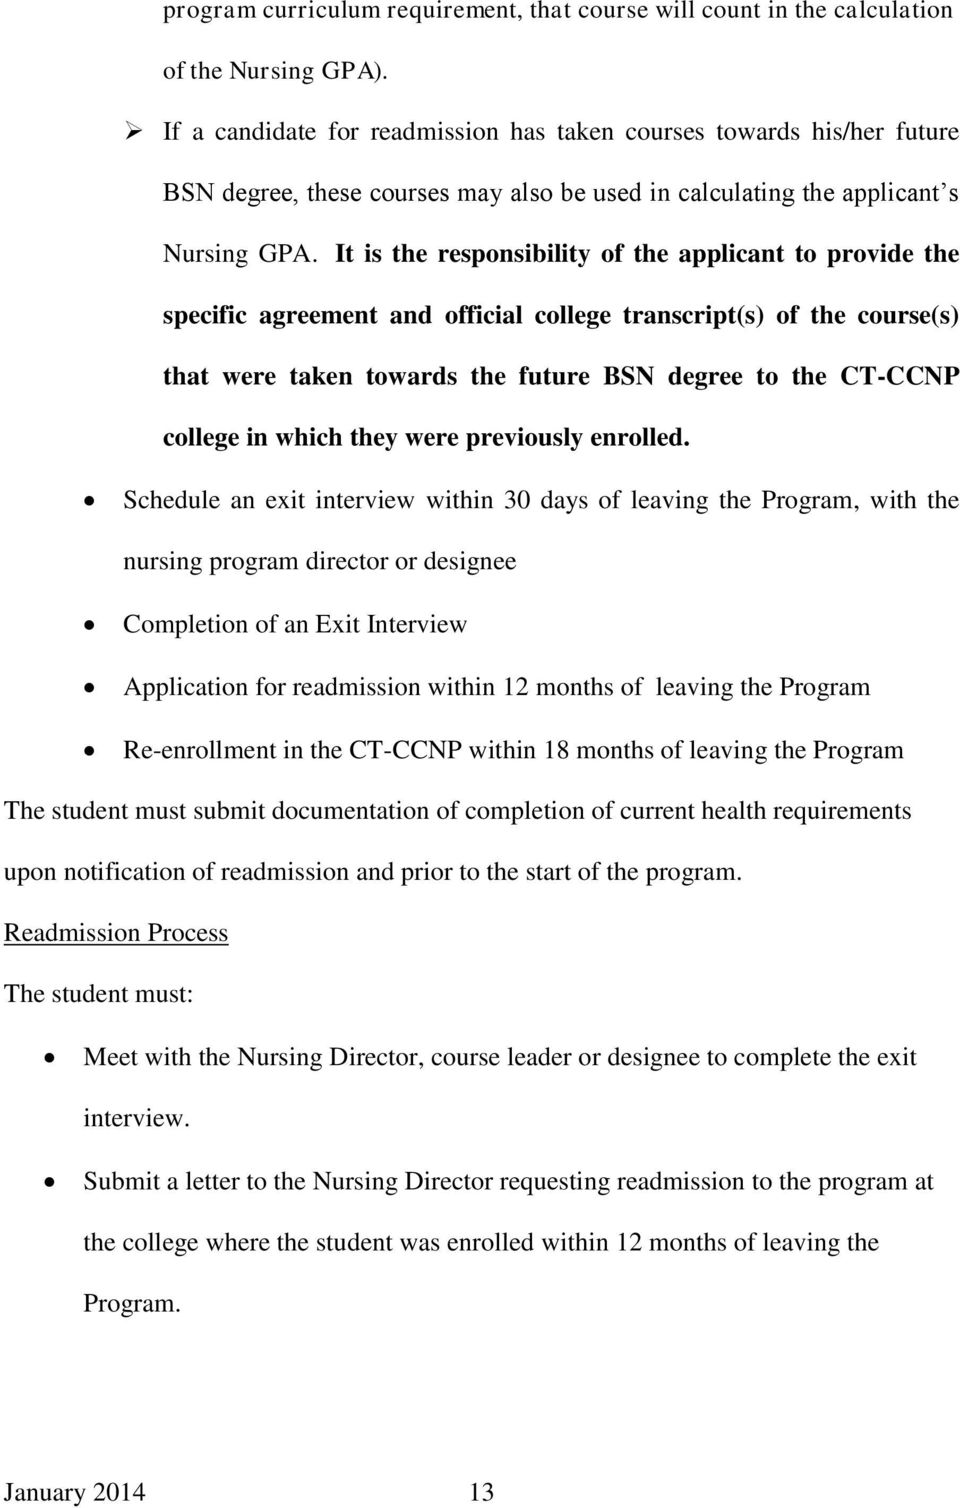 It is the responsibility of the applicant to provide the specific agreement and official college transcript(s) of the course(s) that were taken towards the future BSN degree to the CT-CCNP college in